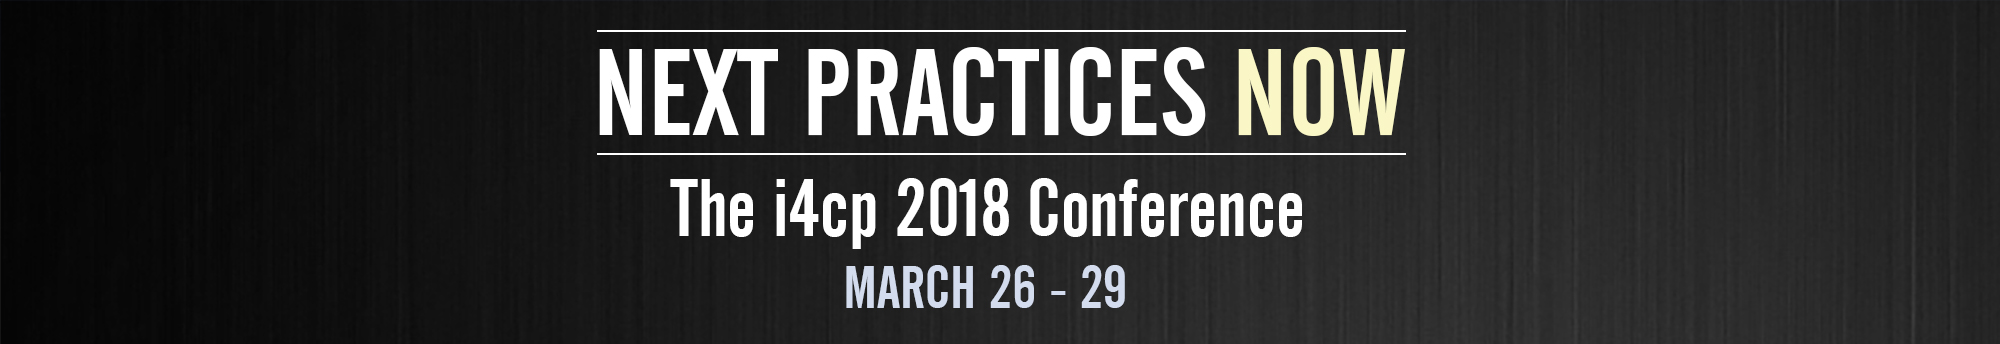 i4cp 2018 Conference